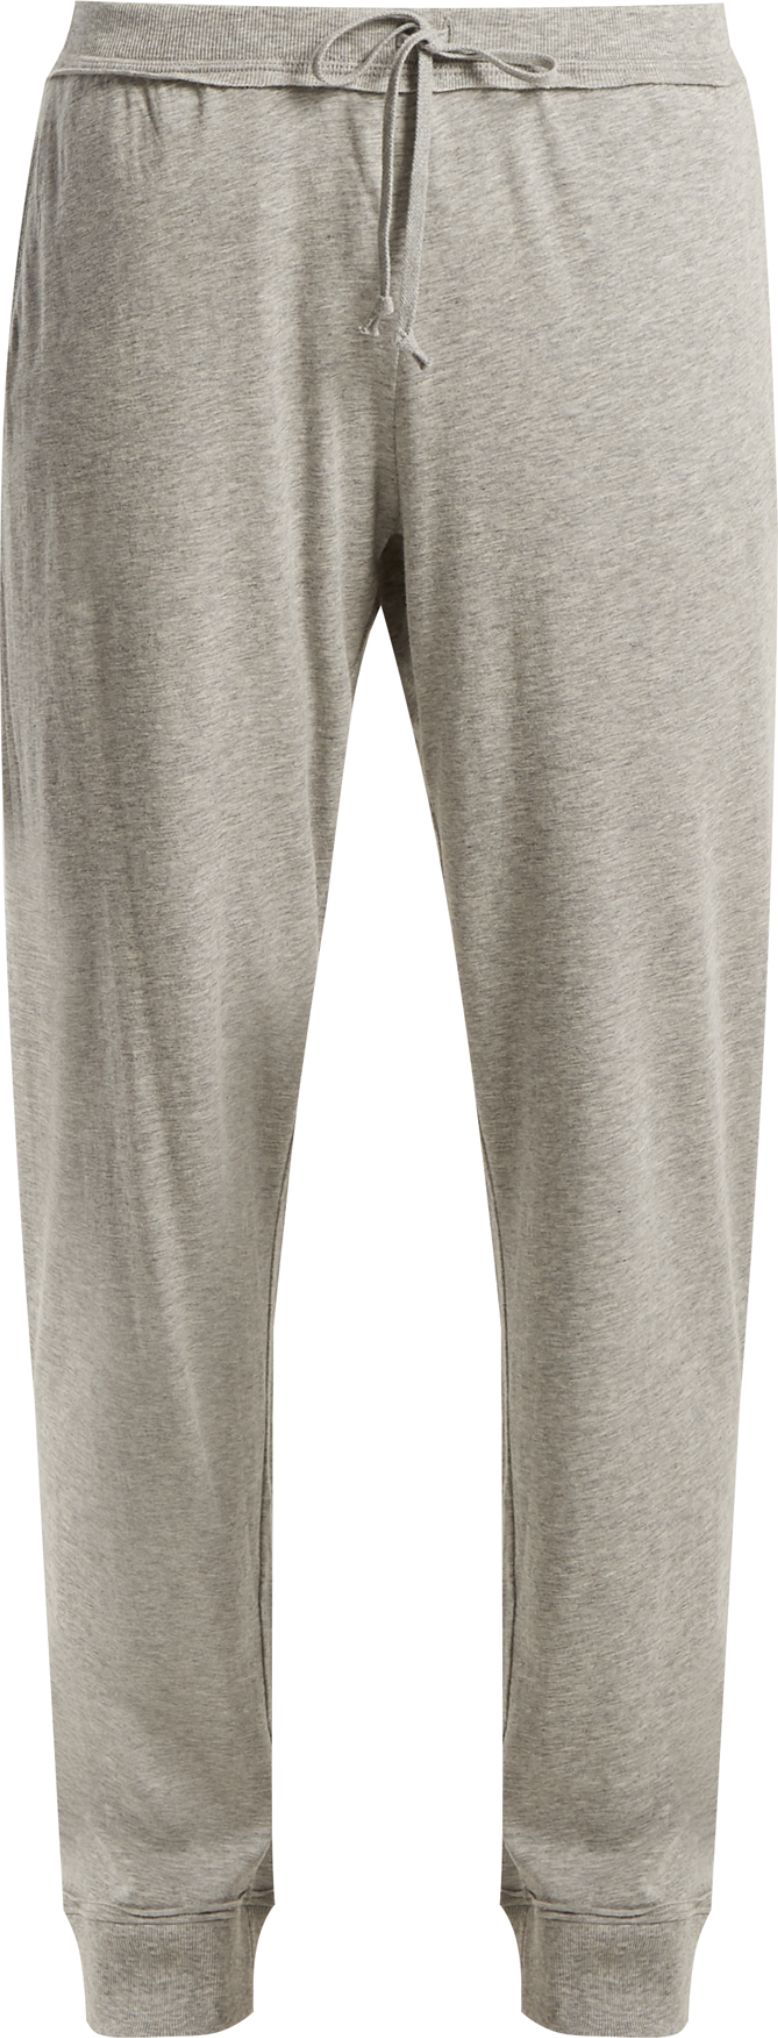 SKIN - Cotton-jersey trousers